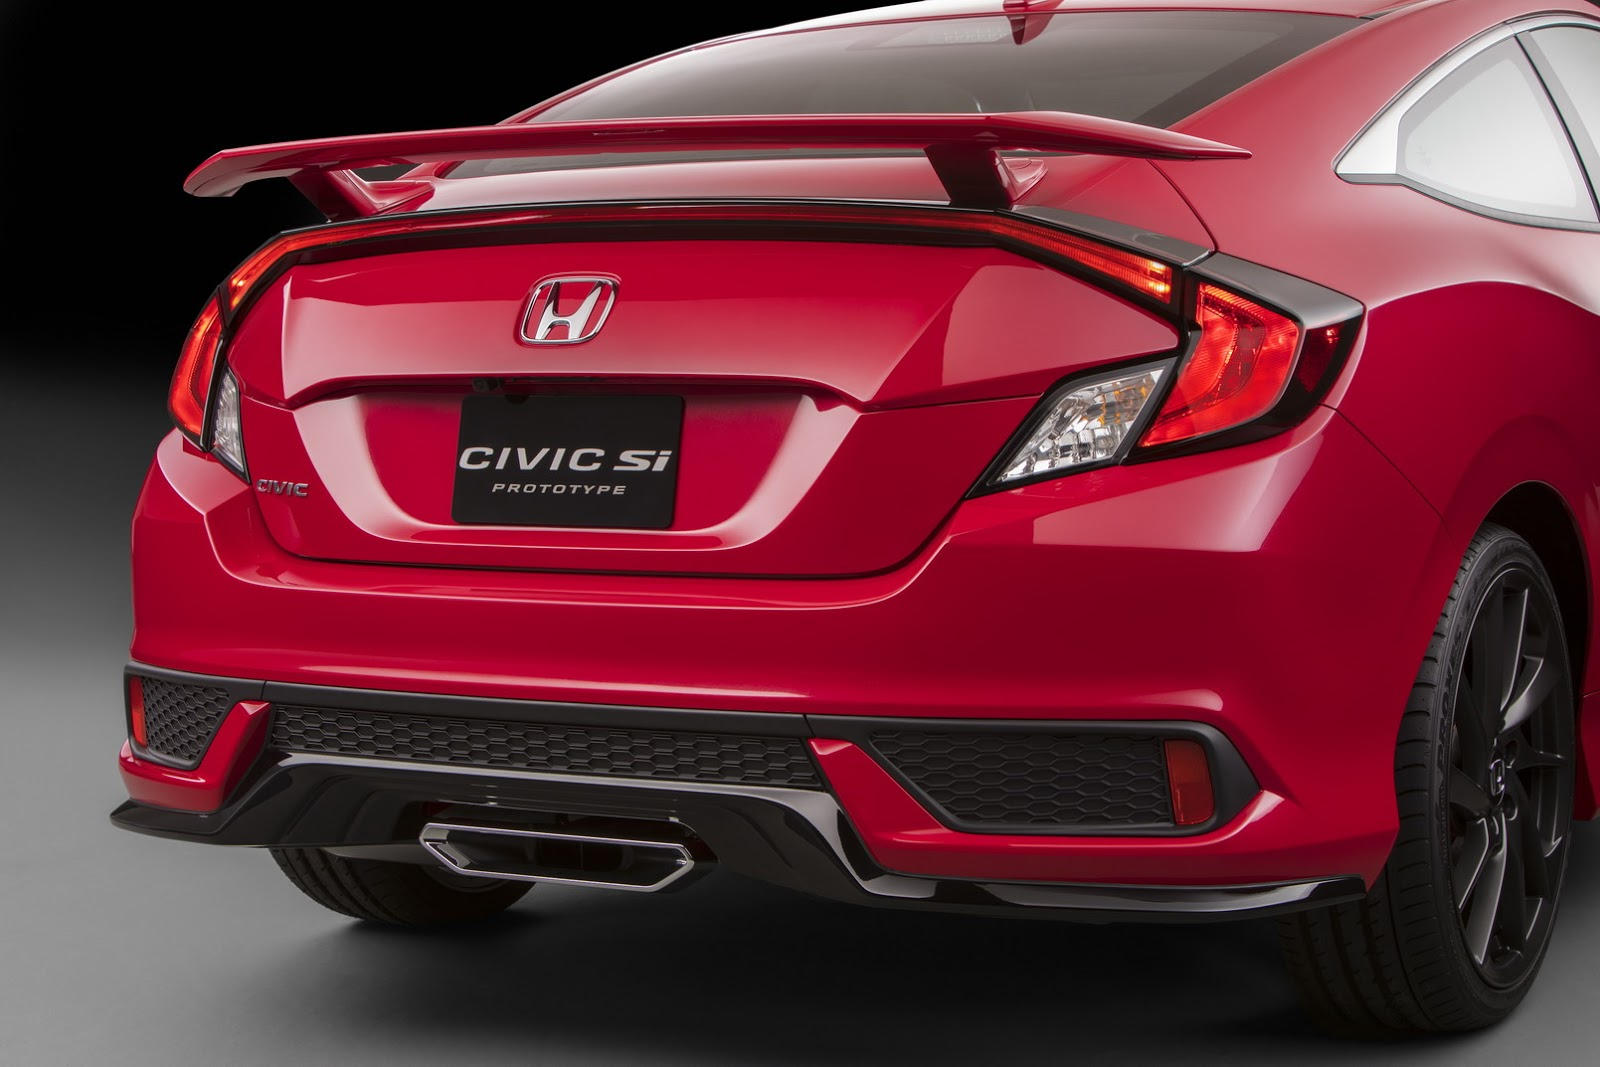 honda confirms 2017 civic si will get 1 5 vtec turbo autoevolution. Black Bedroom Furniture Sets. Home Design Ideas